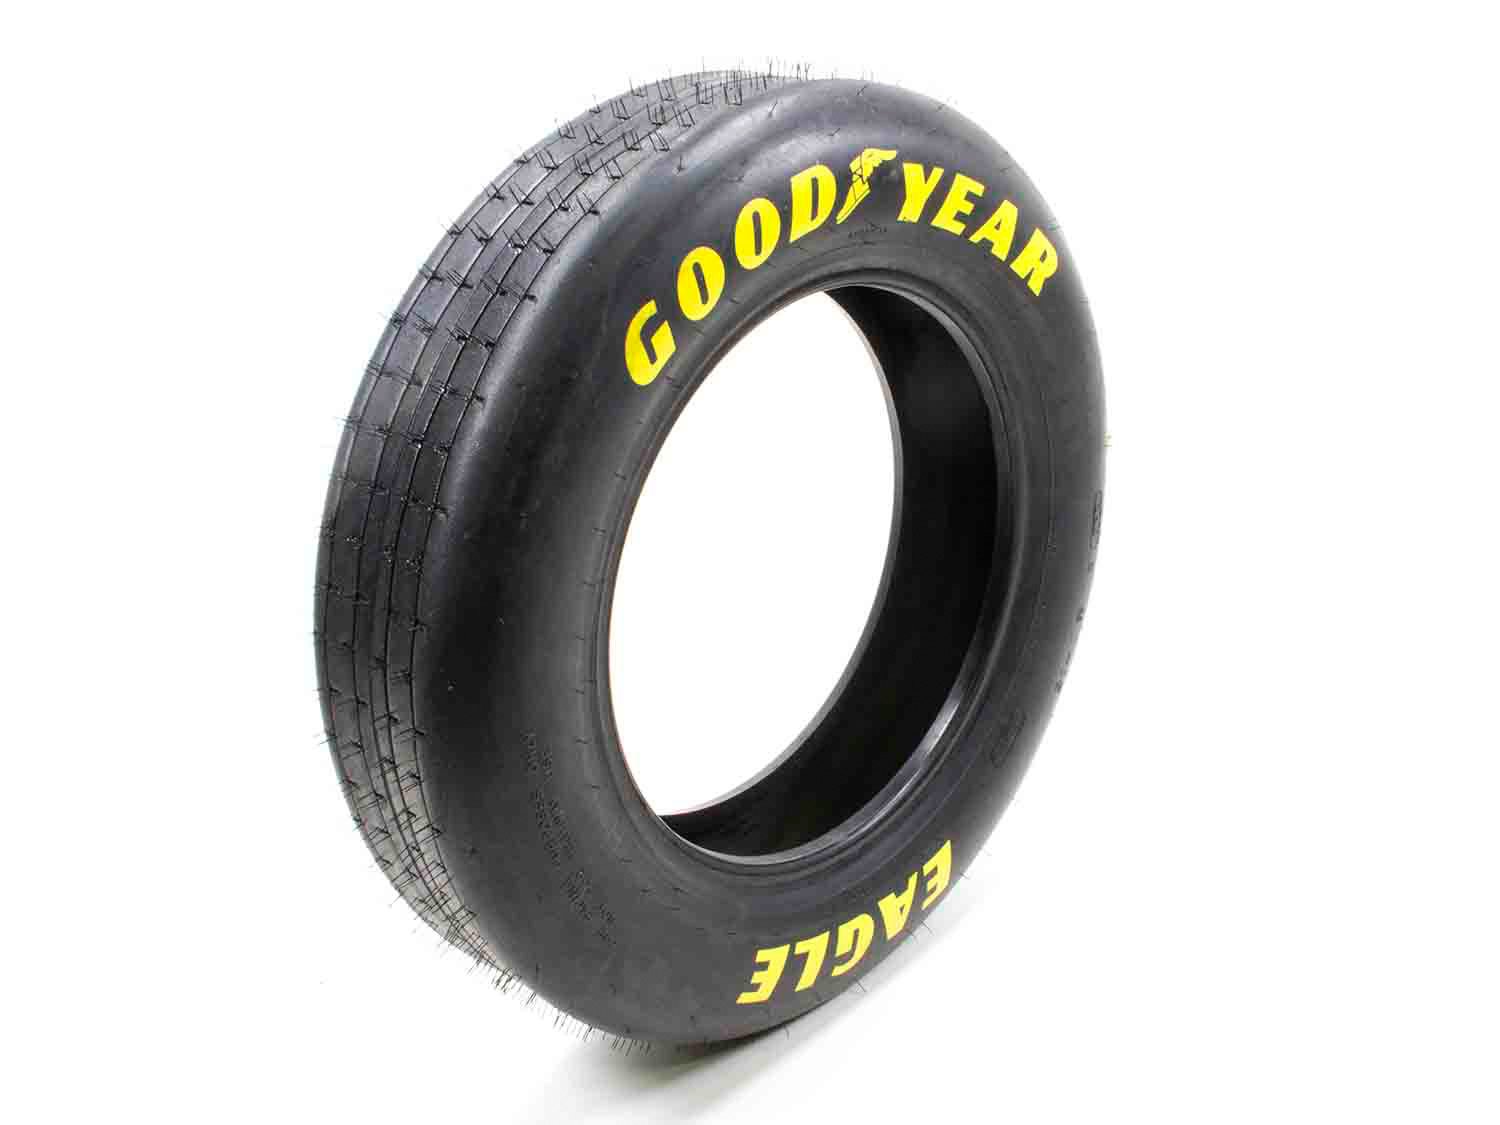 Goodyear D1965 Tire, Drag Front, Front Runner, 27.0 x 4.5-15, Bias Ply, Hard Compound, Yellow Letter Sidewall, Each